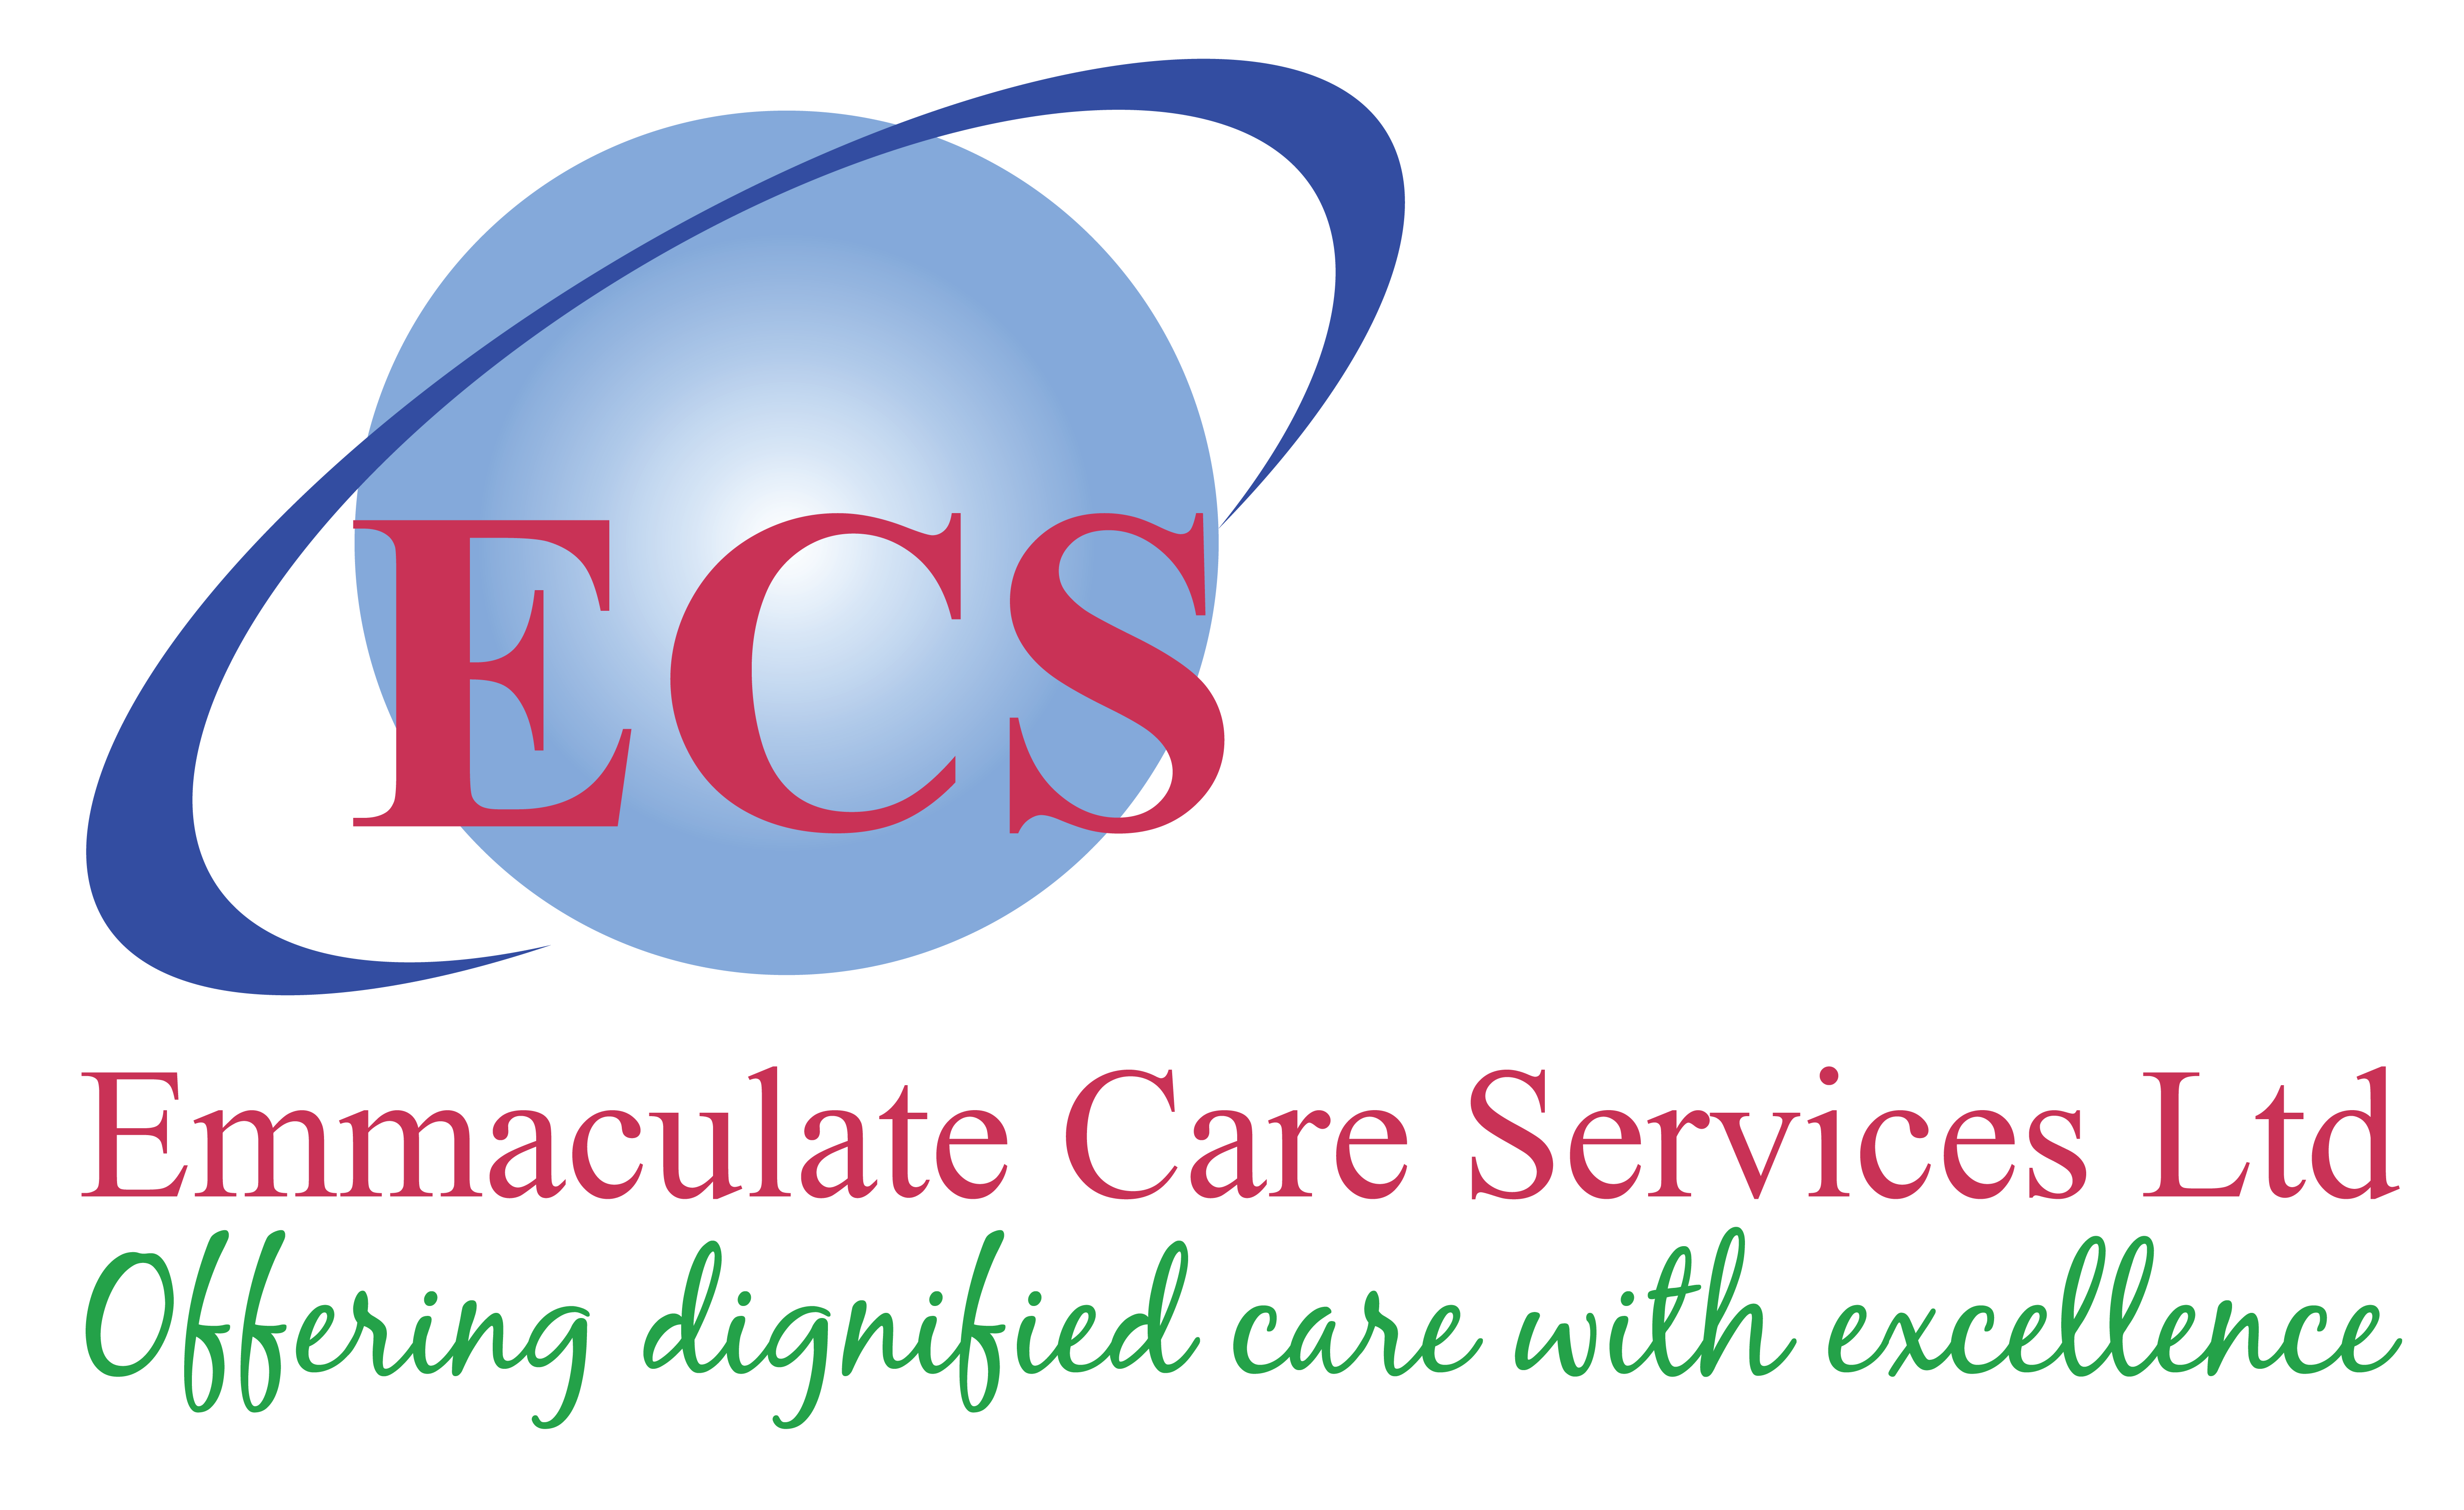 Emmaculate Care Services